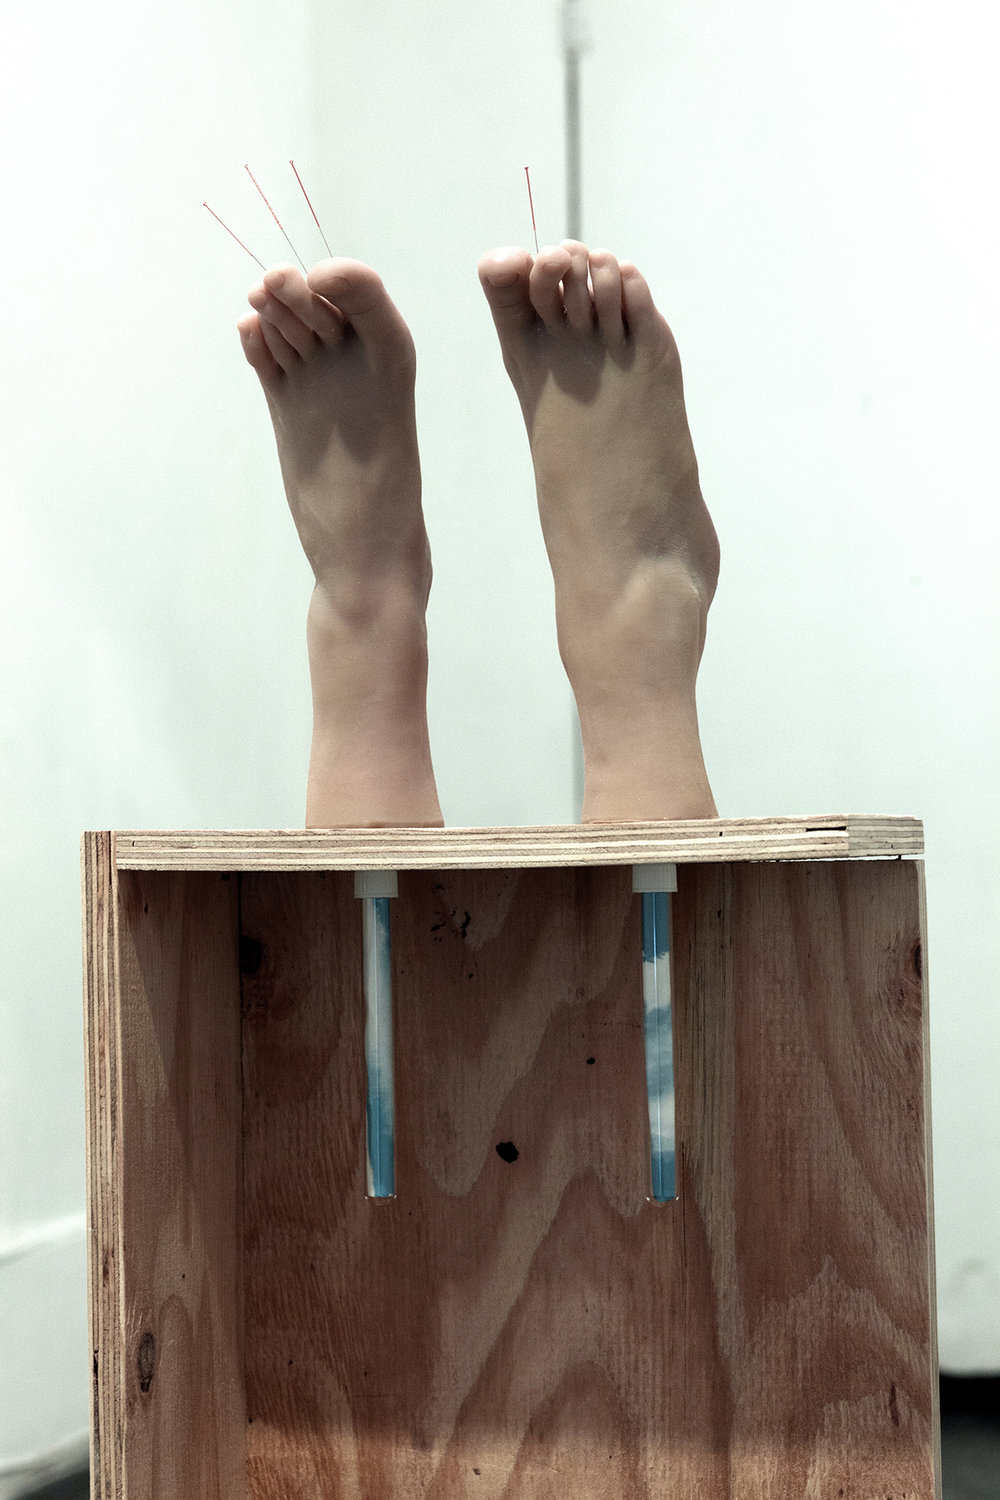 """Copy of Maryam Jafri. Anxiety (2017). 12.5""""x 6.75"""" x 40.5"""". wood, silicone feet, acupuncture needles, test tubes, paper. Detail"""